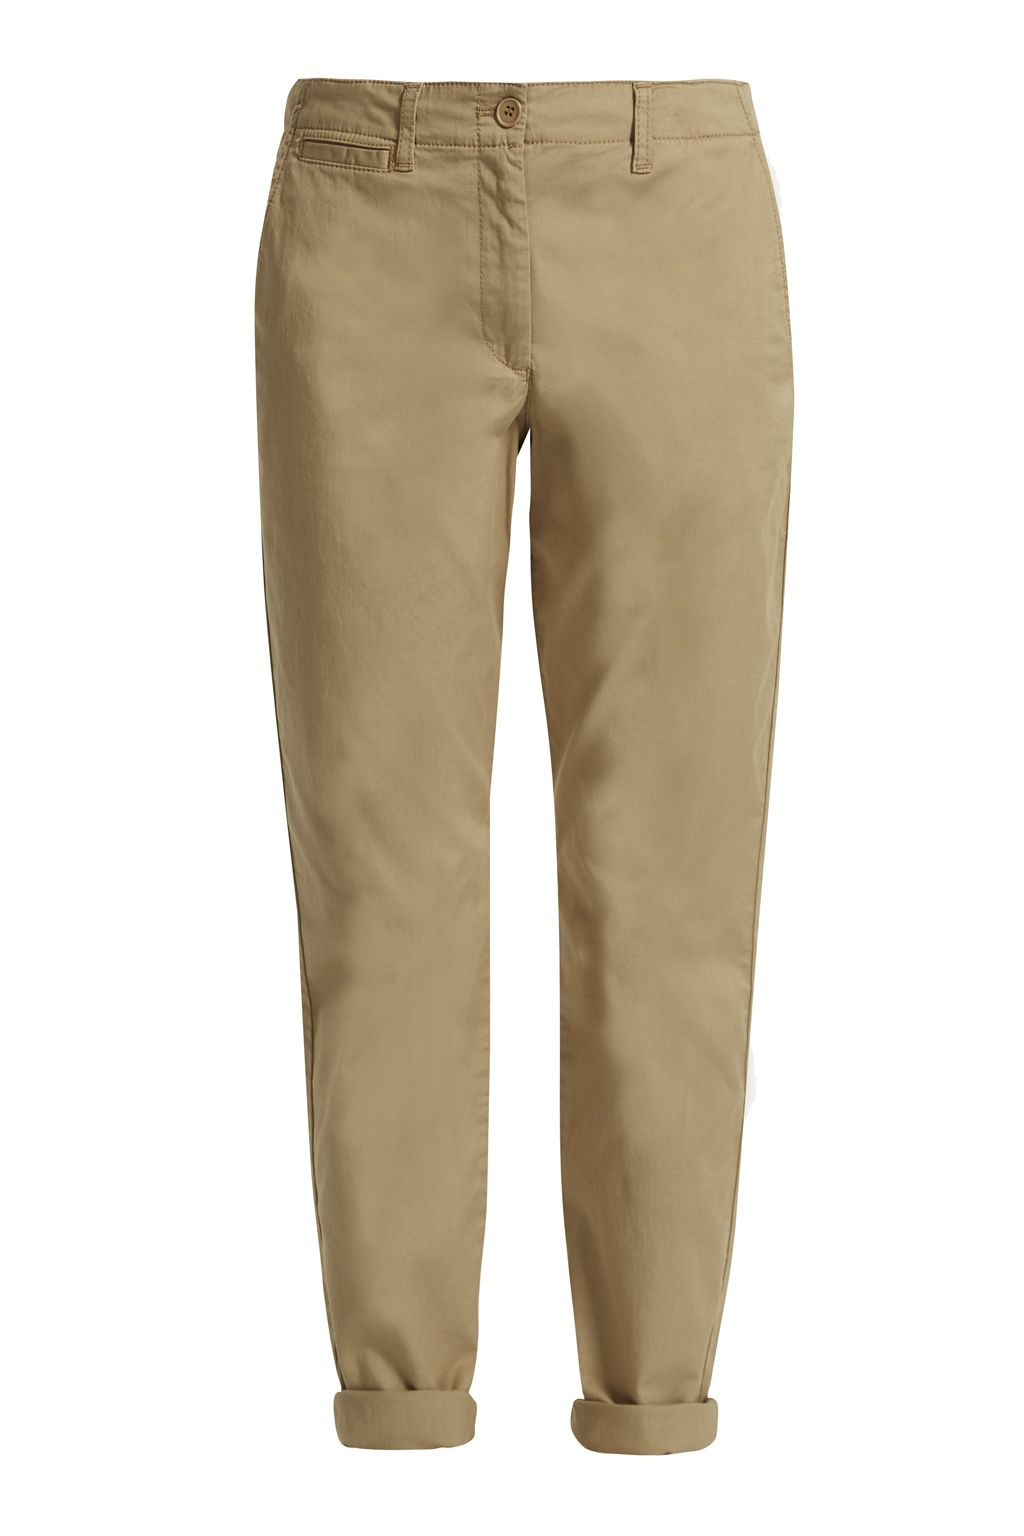 French Connection Summer Stretch Chinos, Brown